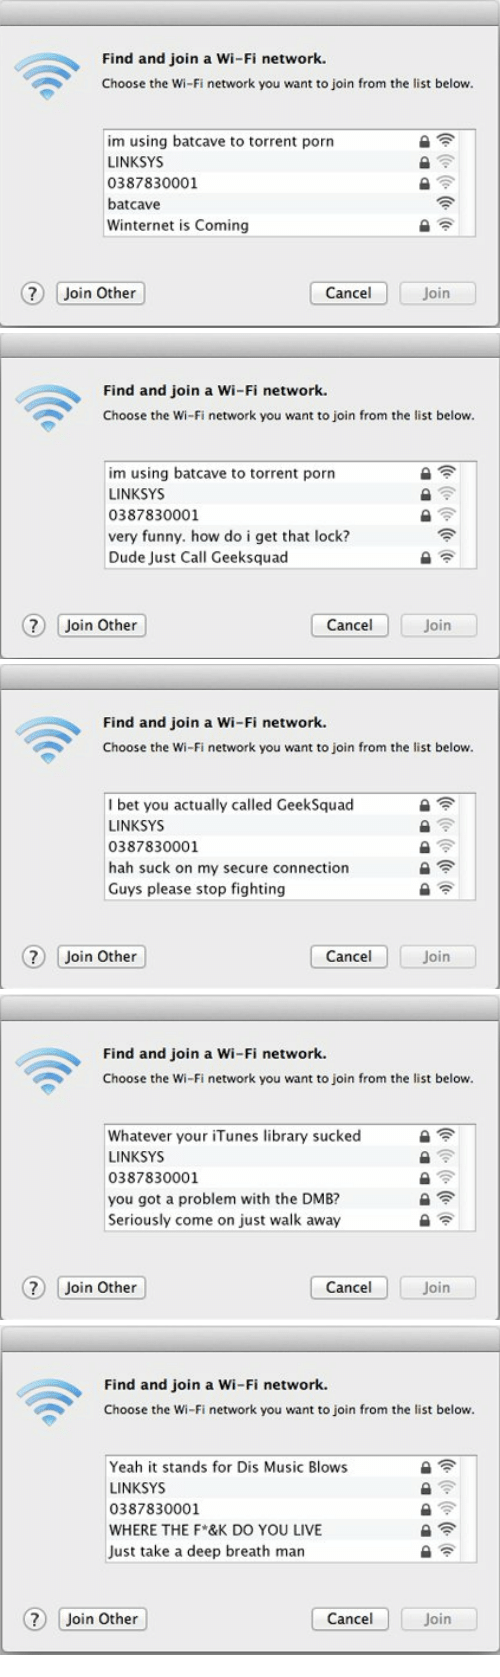 Suck On My: Find and join a Wi-Fi network.  Choose the Wi-Fi network you want to join from the list below.  im using batcave to torrent porn  LINKSYS  0387830001  batcave  Winternet is Coming  ? Join Other  Cancel  Join   Find and join a Wi-Fi network.  Choose the Wi-Fi network you want to join from the list below.  im using batcave to torrent porn  LINKSYS  0387830001  very funny. how do i get that lock?  Dude Just Call Geeksquad  ? Join Other  Cancel  Join   Find and join a Wi-Fi network.  Choose the Wi-Fi network you want to join from the list below.  I bet you actually called GeekSquad  LINKSYS  0387830001  hah suck on my secure connection  Guys please stop fighting  ? Join Other  Cancel  Join   Find and join a Wi-Fi network.  Choose the Wi-Fi network you want to join from the list below.  Whatever your iTunes library sucked  LINKSYS  0387830001  you got a problem with the DMB?  Seriously come on just walk away  ?) Join Other  Cancel  Join   Find and join a Wi-Fi network.  Choose the Wi-Fi network you want to join from the list below.  Yeah it stands for Dis Music Blows  LINKSYS  0387830001  WHERE THE F*&K DO YOU LIVE  Just take a deep breath man  ?) Join Other  Cancel  Join